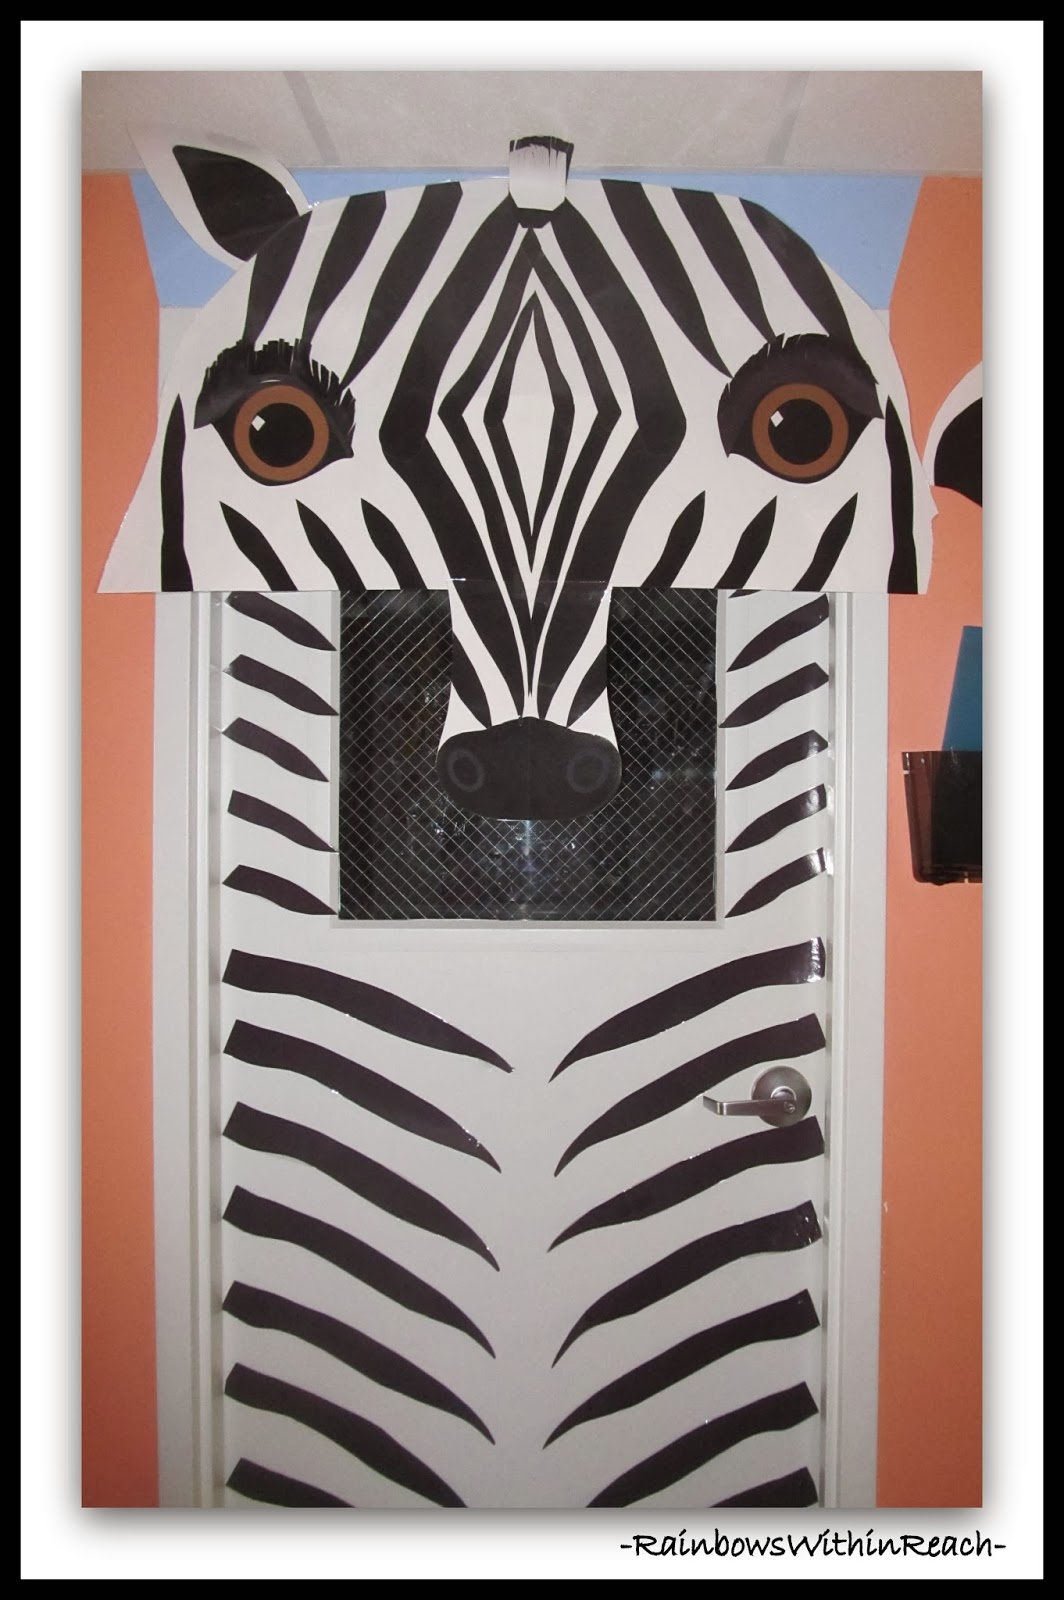 Decorated Classroom Door with Zebra Theme via RainbowsWithinReach